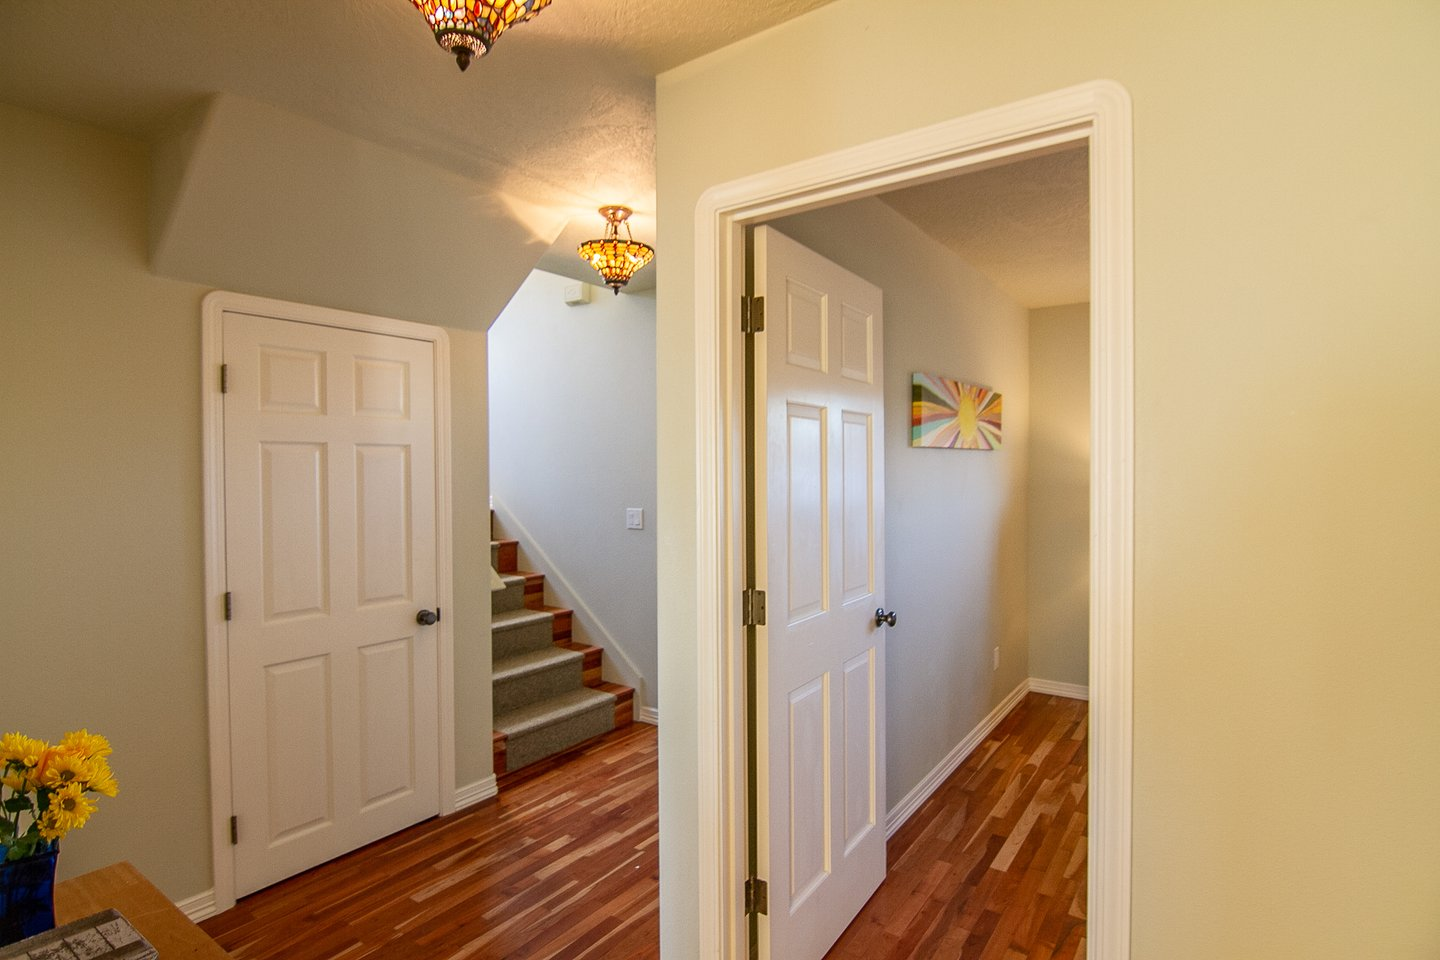 The bright entryway leads to the first two bedrooms as well as upstairs.